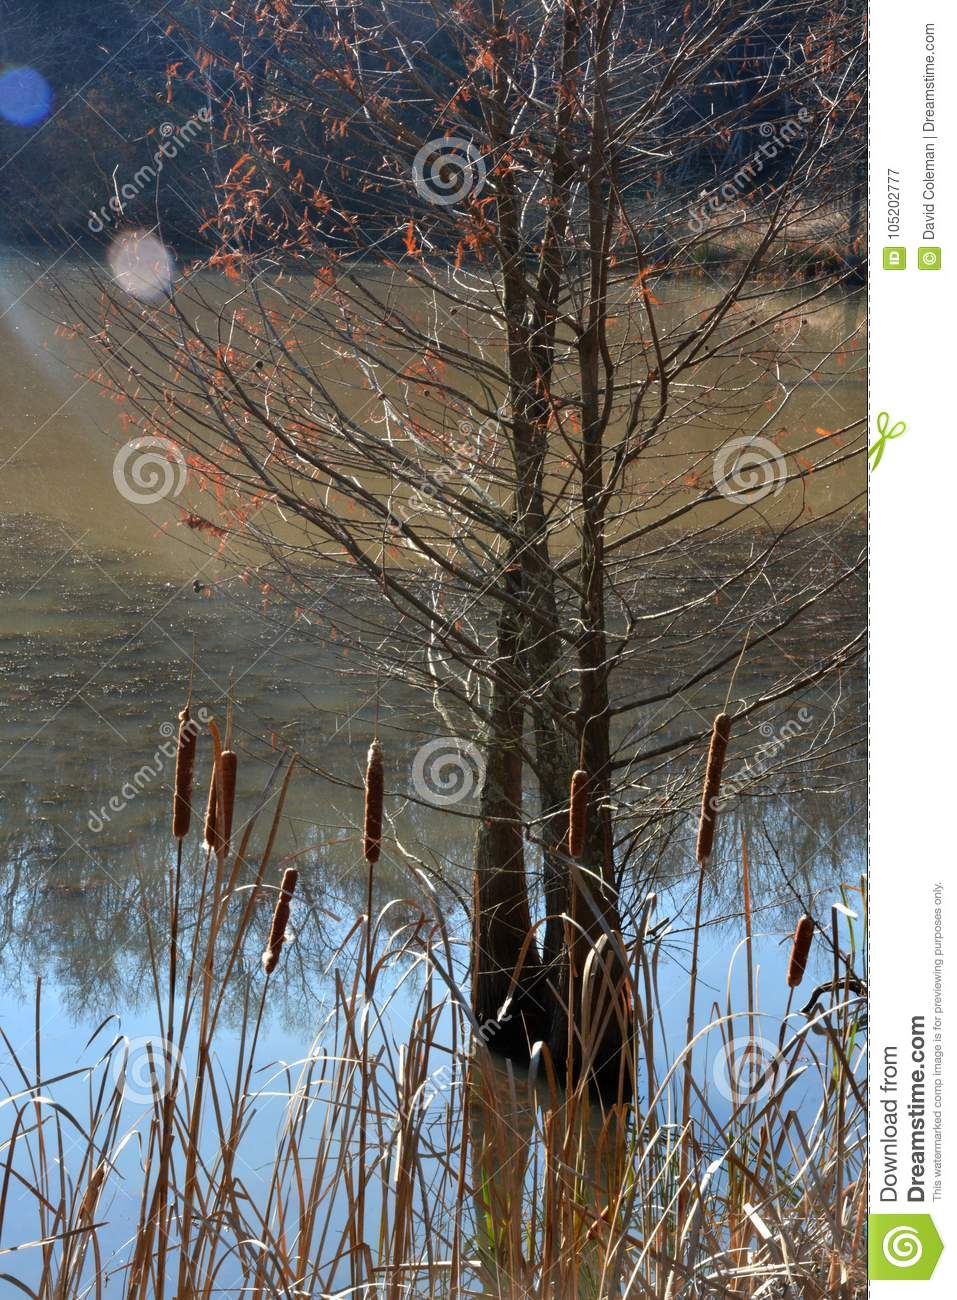 Cat tails and a hemlock tree